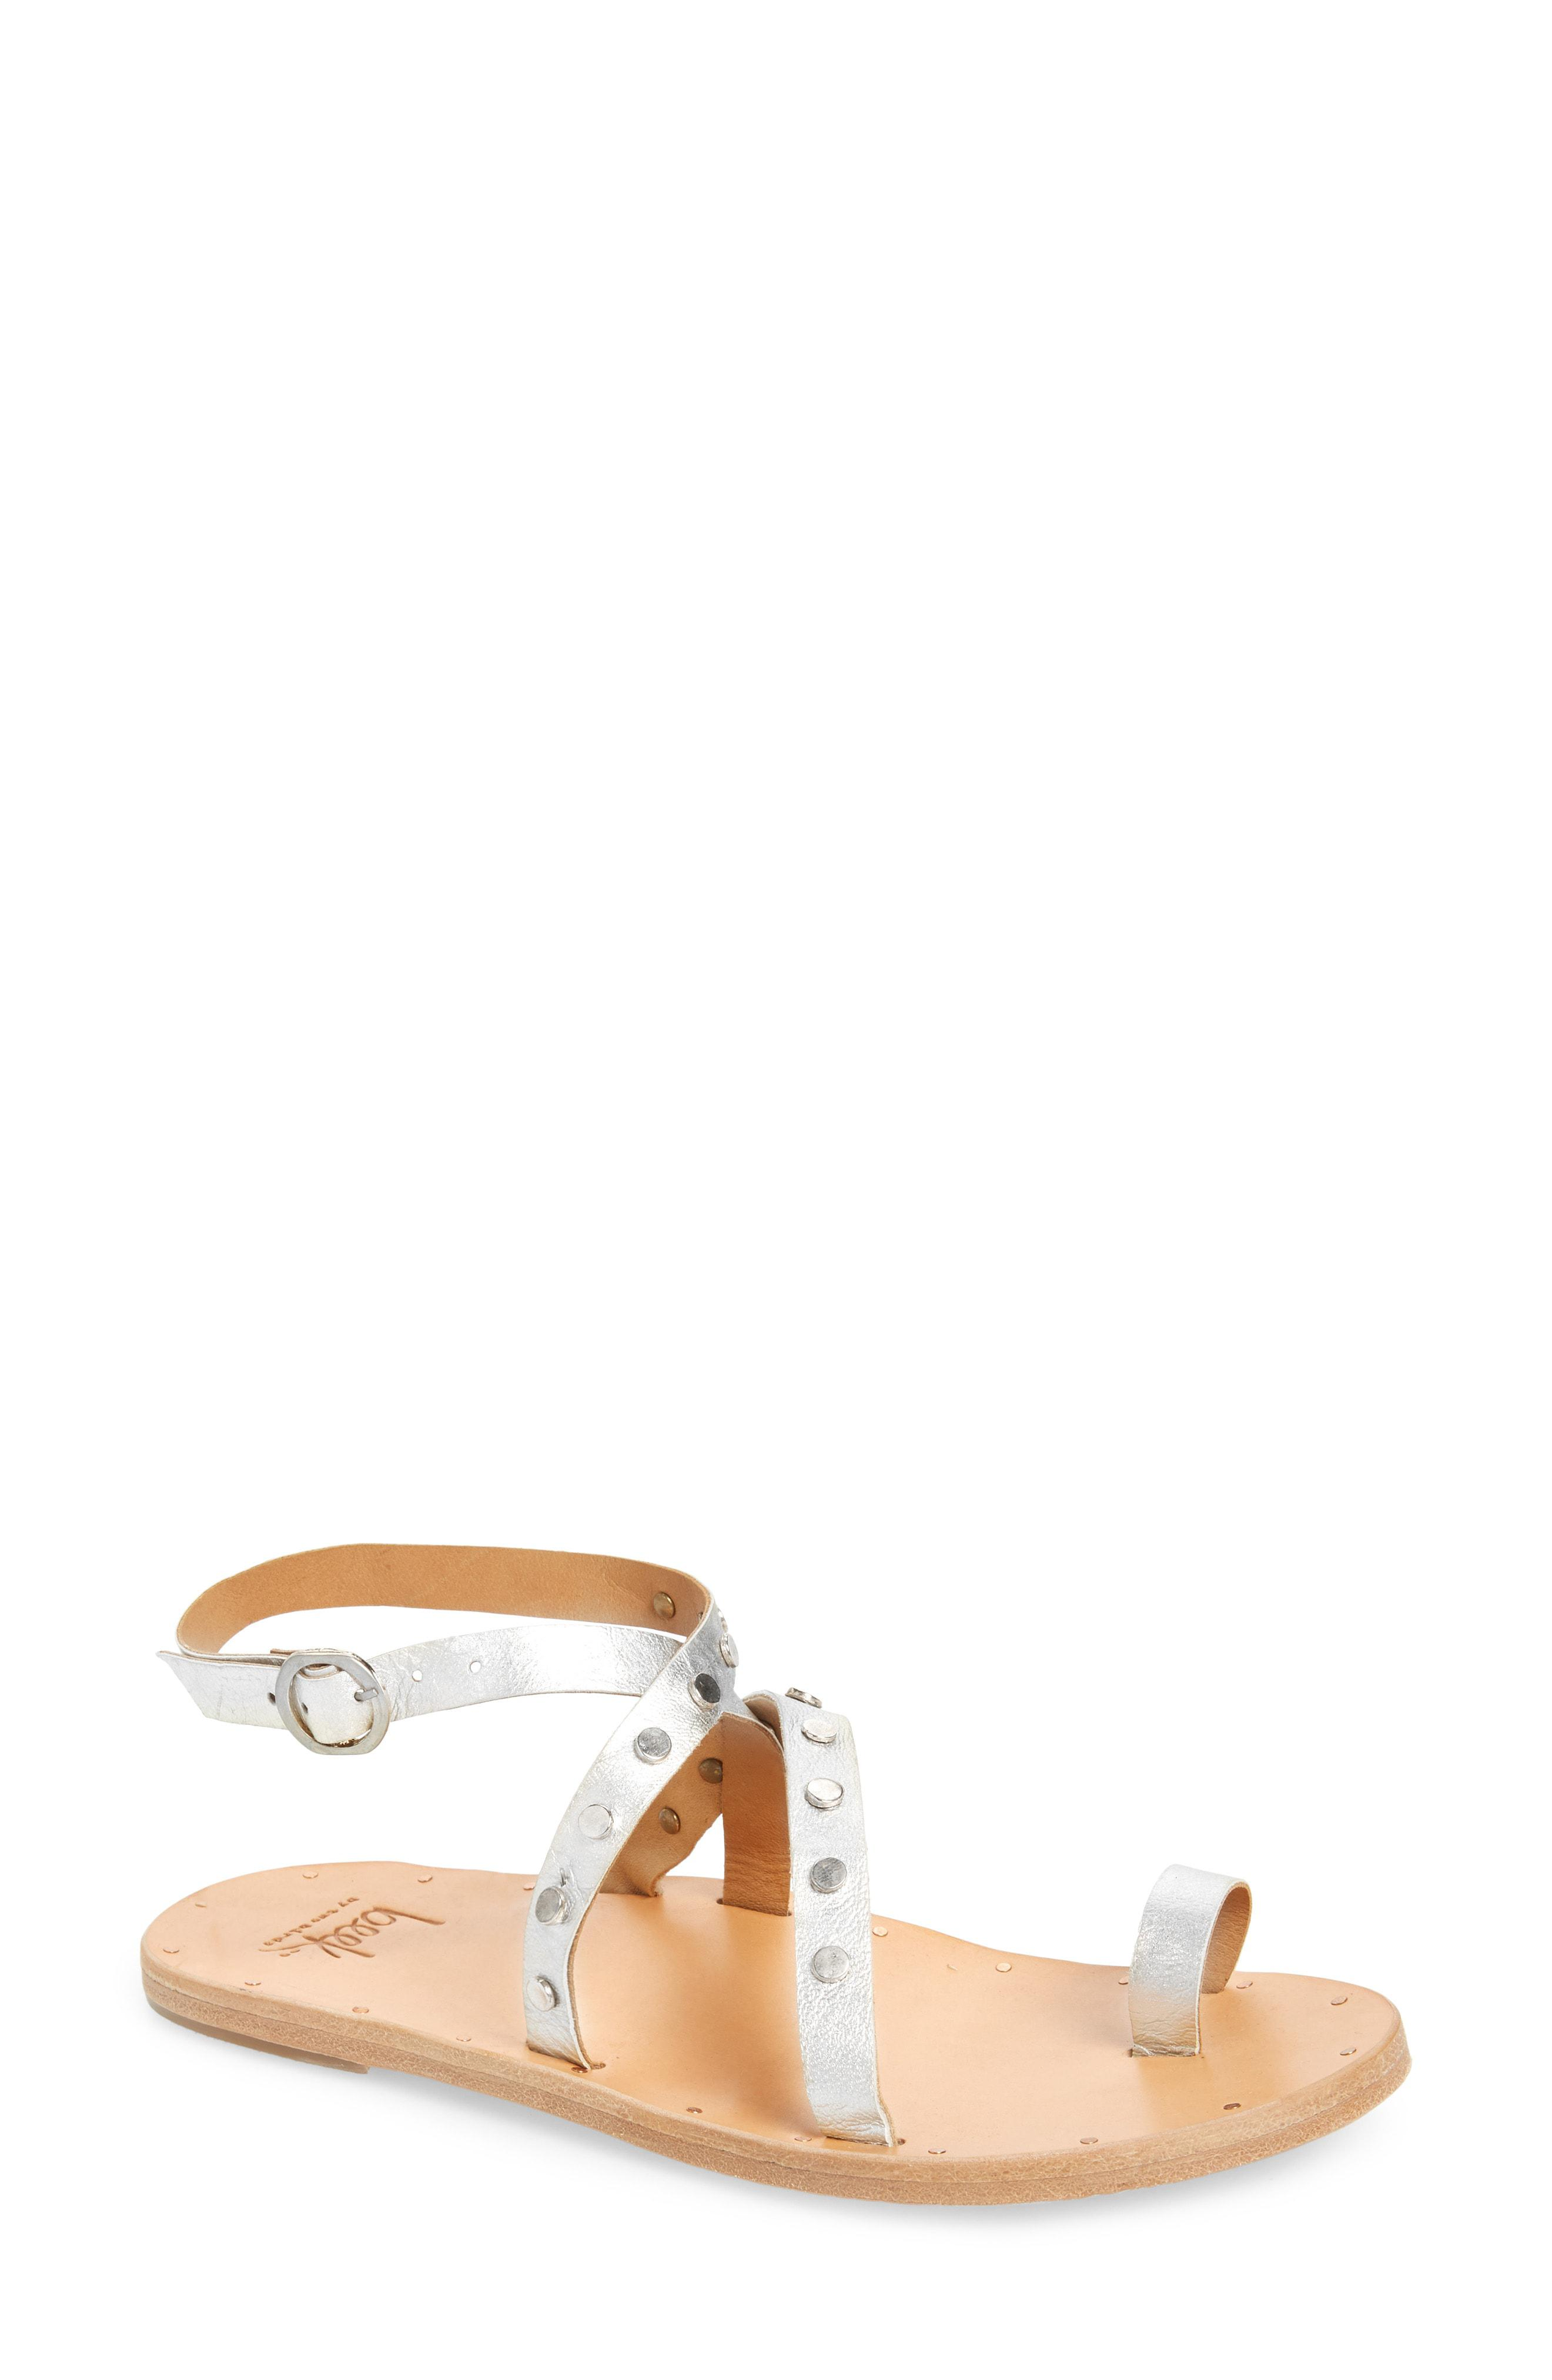 8952ce08ba4b Beek Lorikeet Studded Strappy Flat Sandal in Natural - Lyst